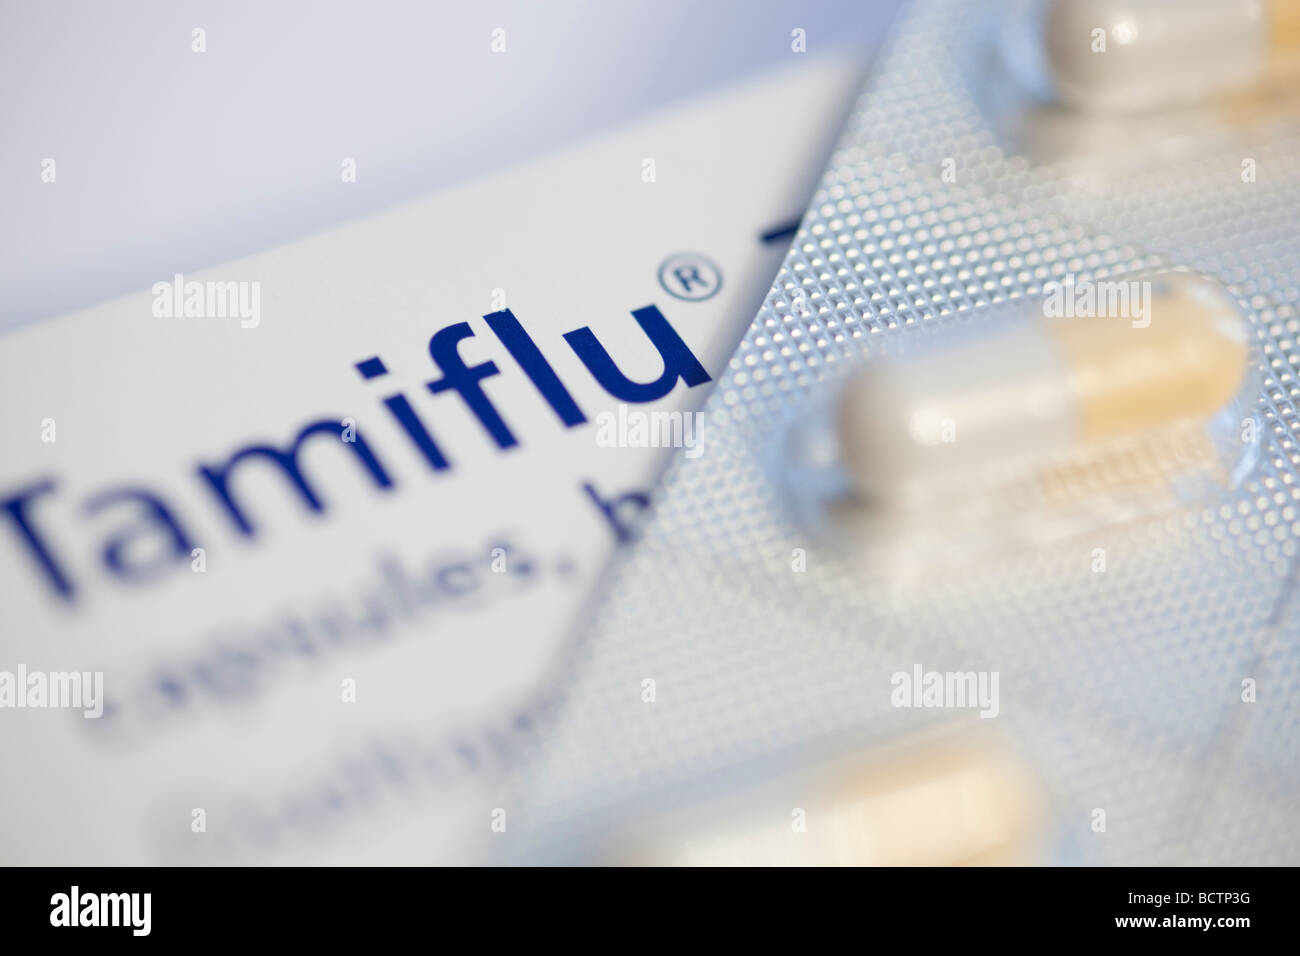 Tamiflu Capsules (Oseltamivir) used to speed recover from H1N1 Swine Flu Influenza manufactured by Roche Pharmaceuticals - Stock Image